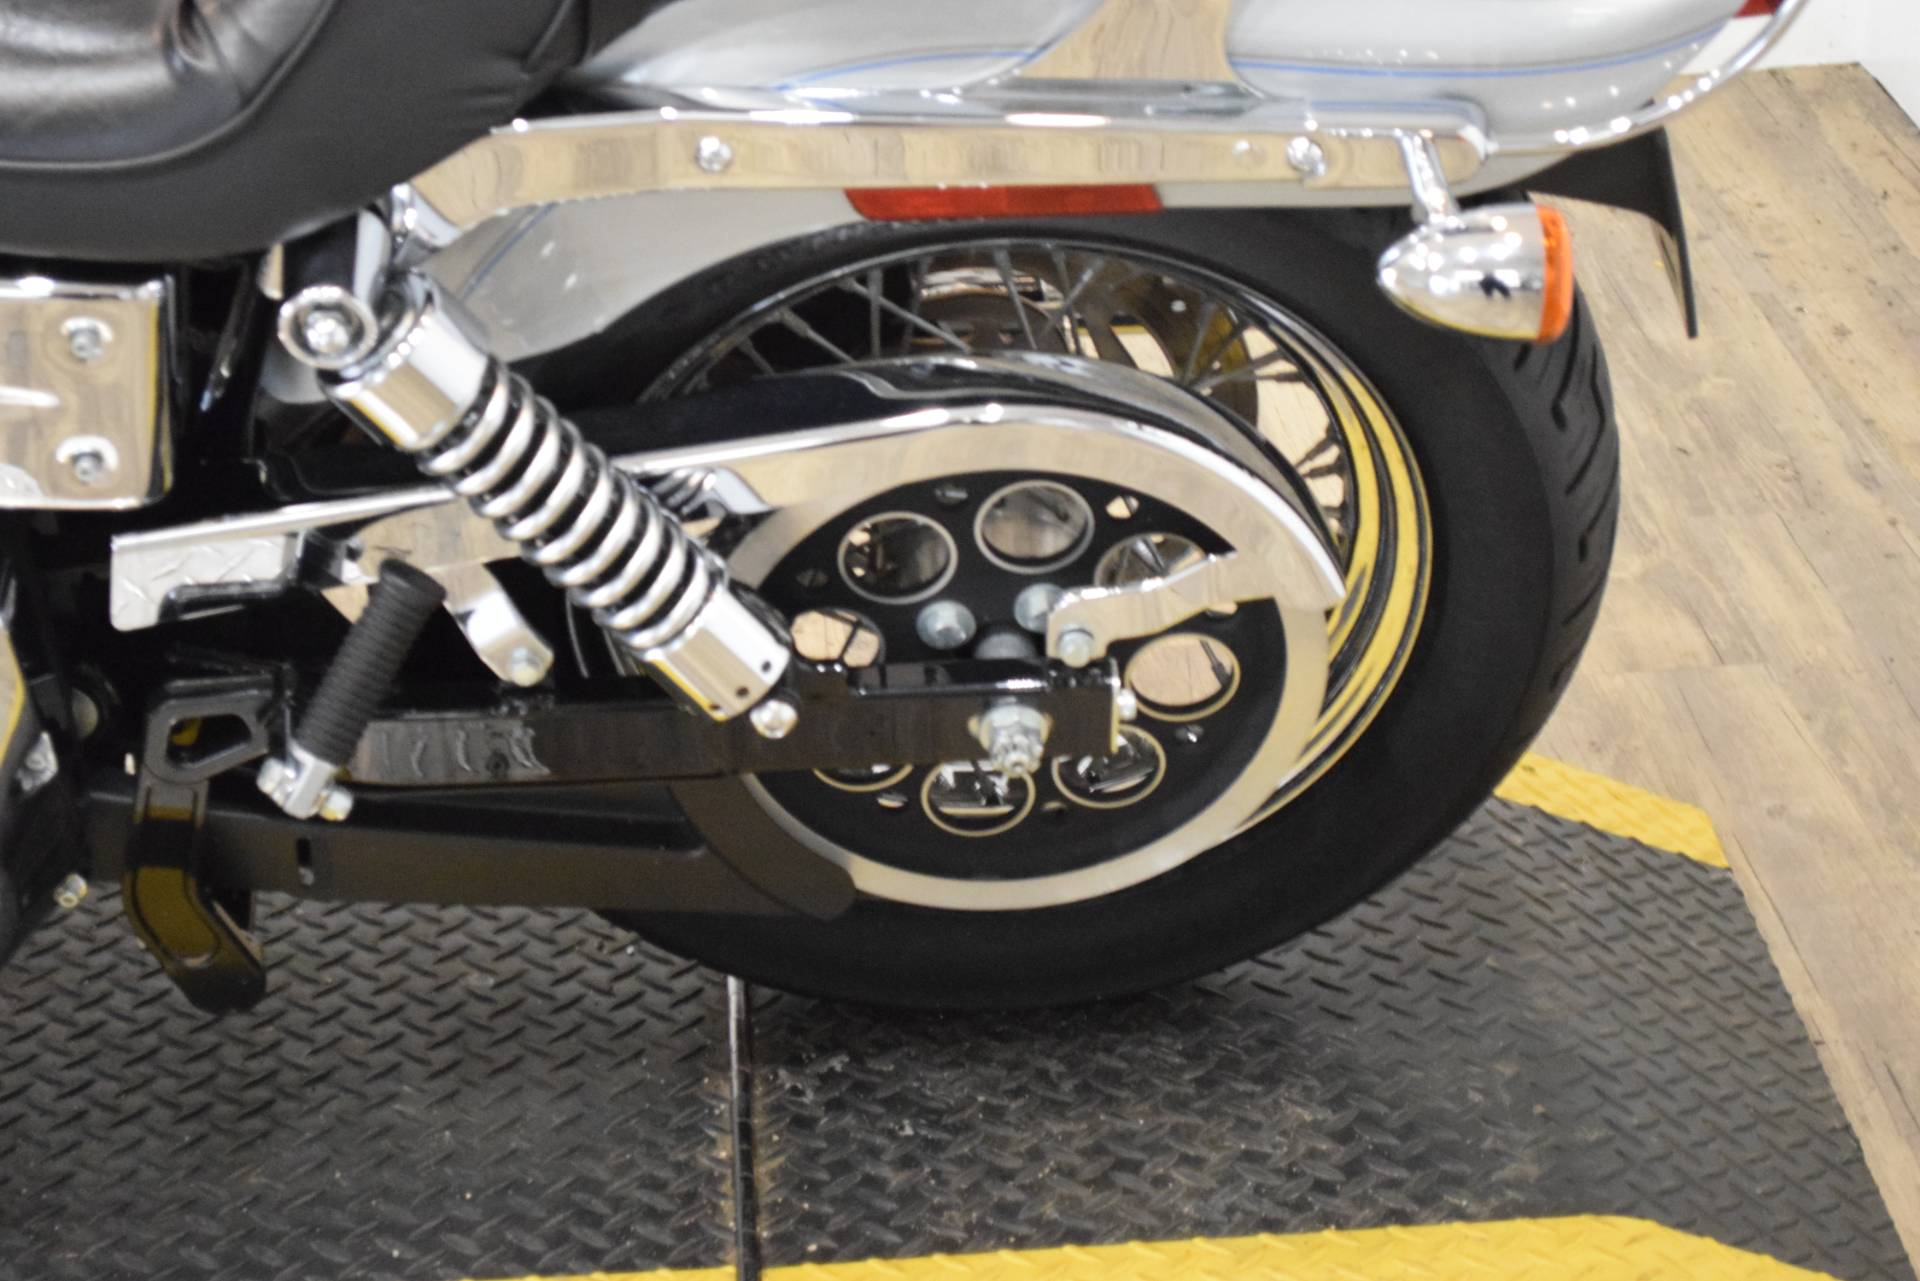 2004 Harley-Davidson FXDWG/FXDWGI Dyna Wide Glide® in Wauconda, Illinois - Photo 17